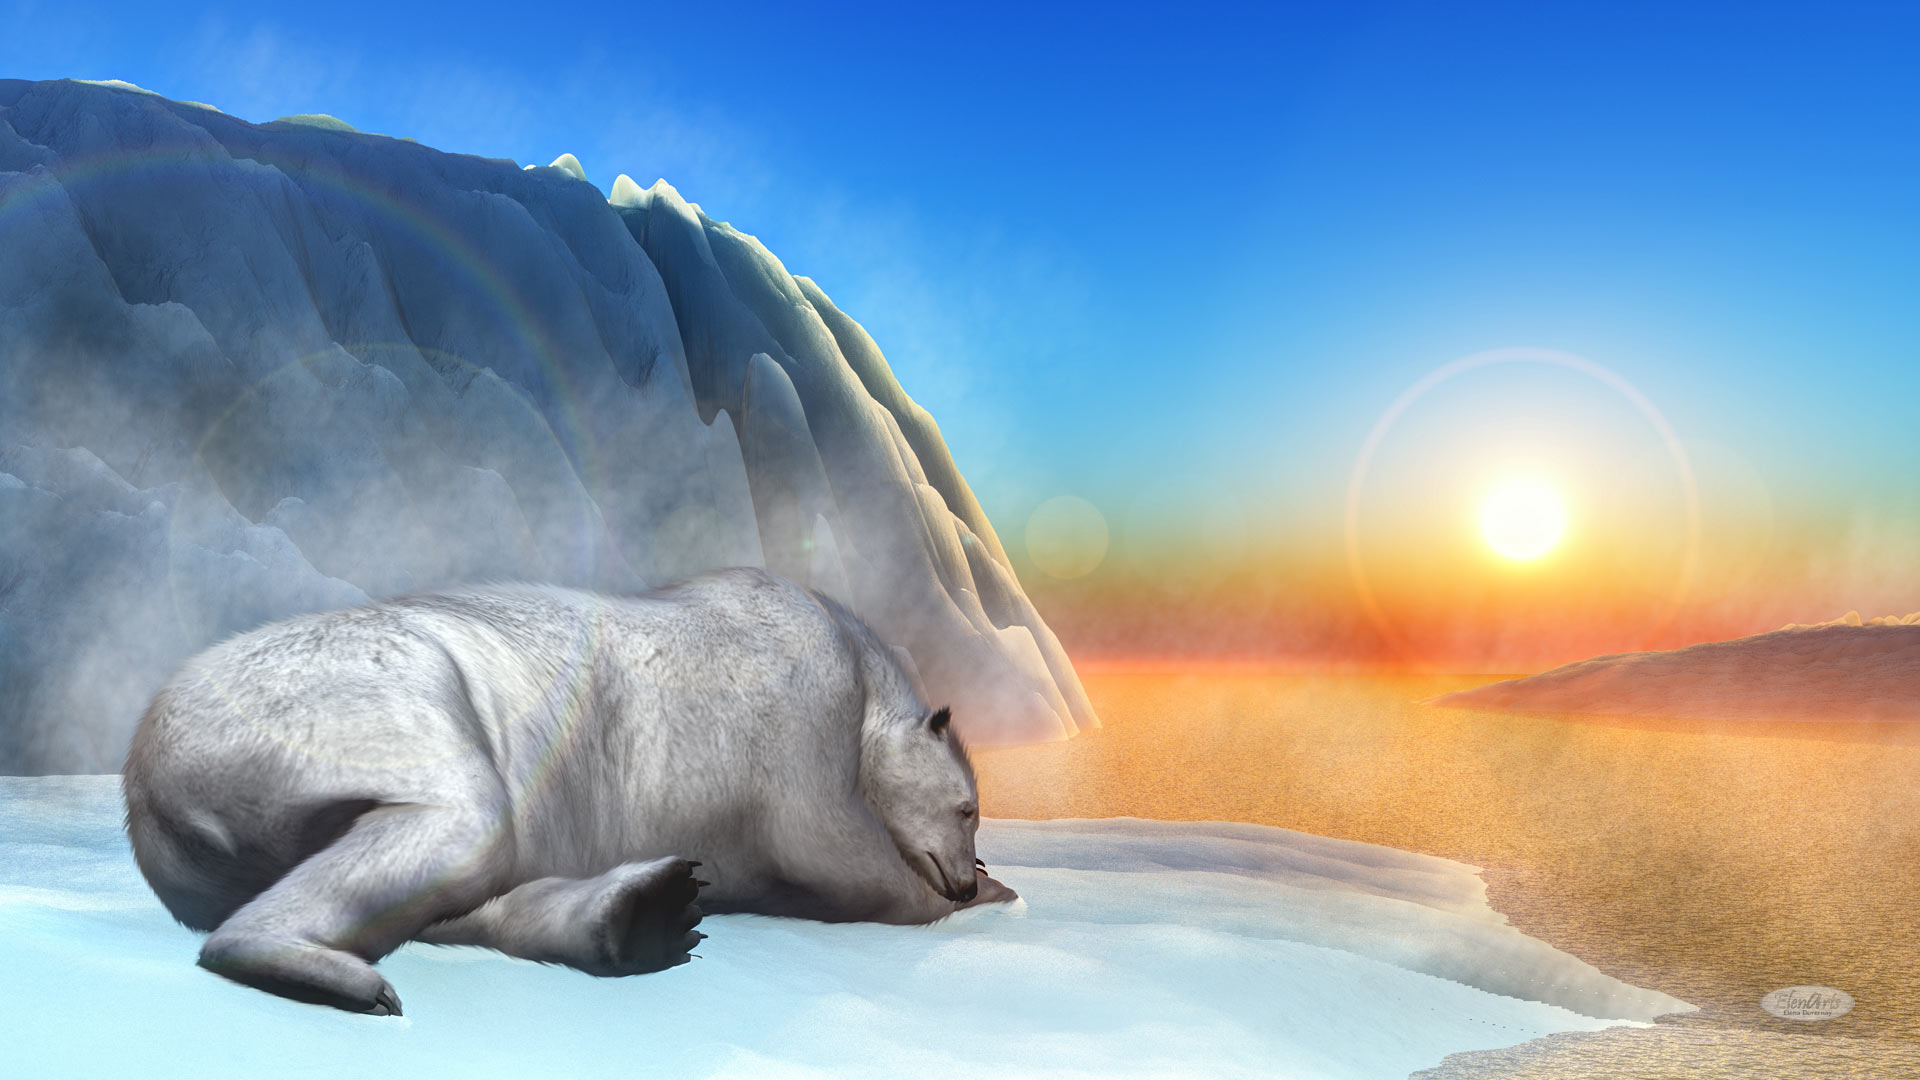 Polar bear sleeping upon an iceberg by sunset - 3D render